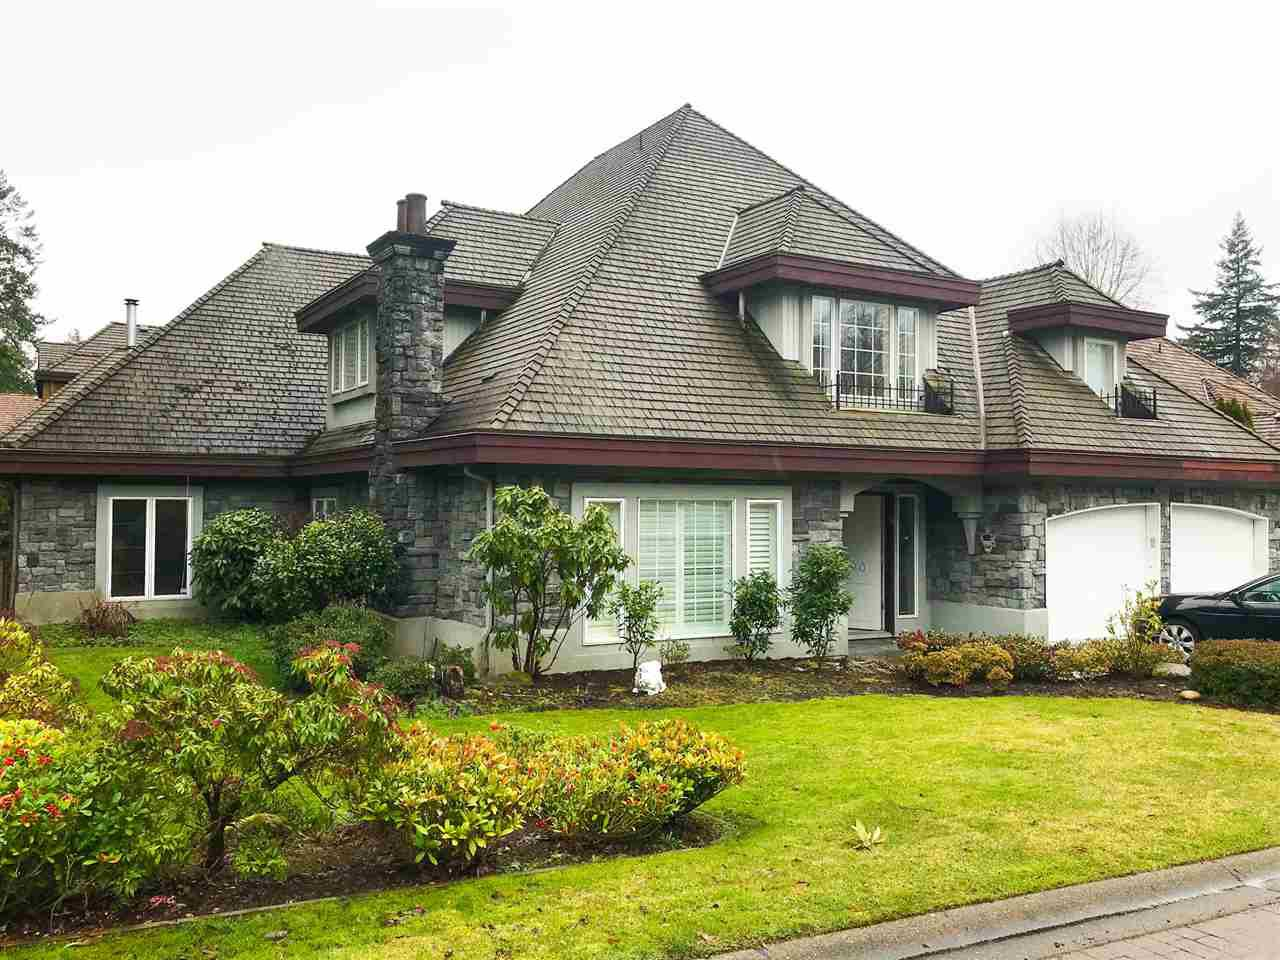 Main Photo: 14390 32B AVENUE in Surrey: Elgin Chantrell House for sale (South Surrey White Rock)  : MLS®# R2431166